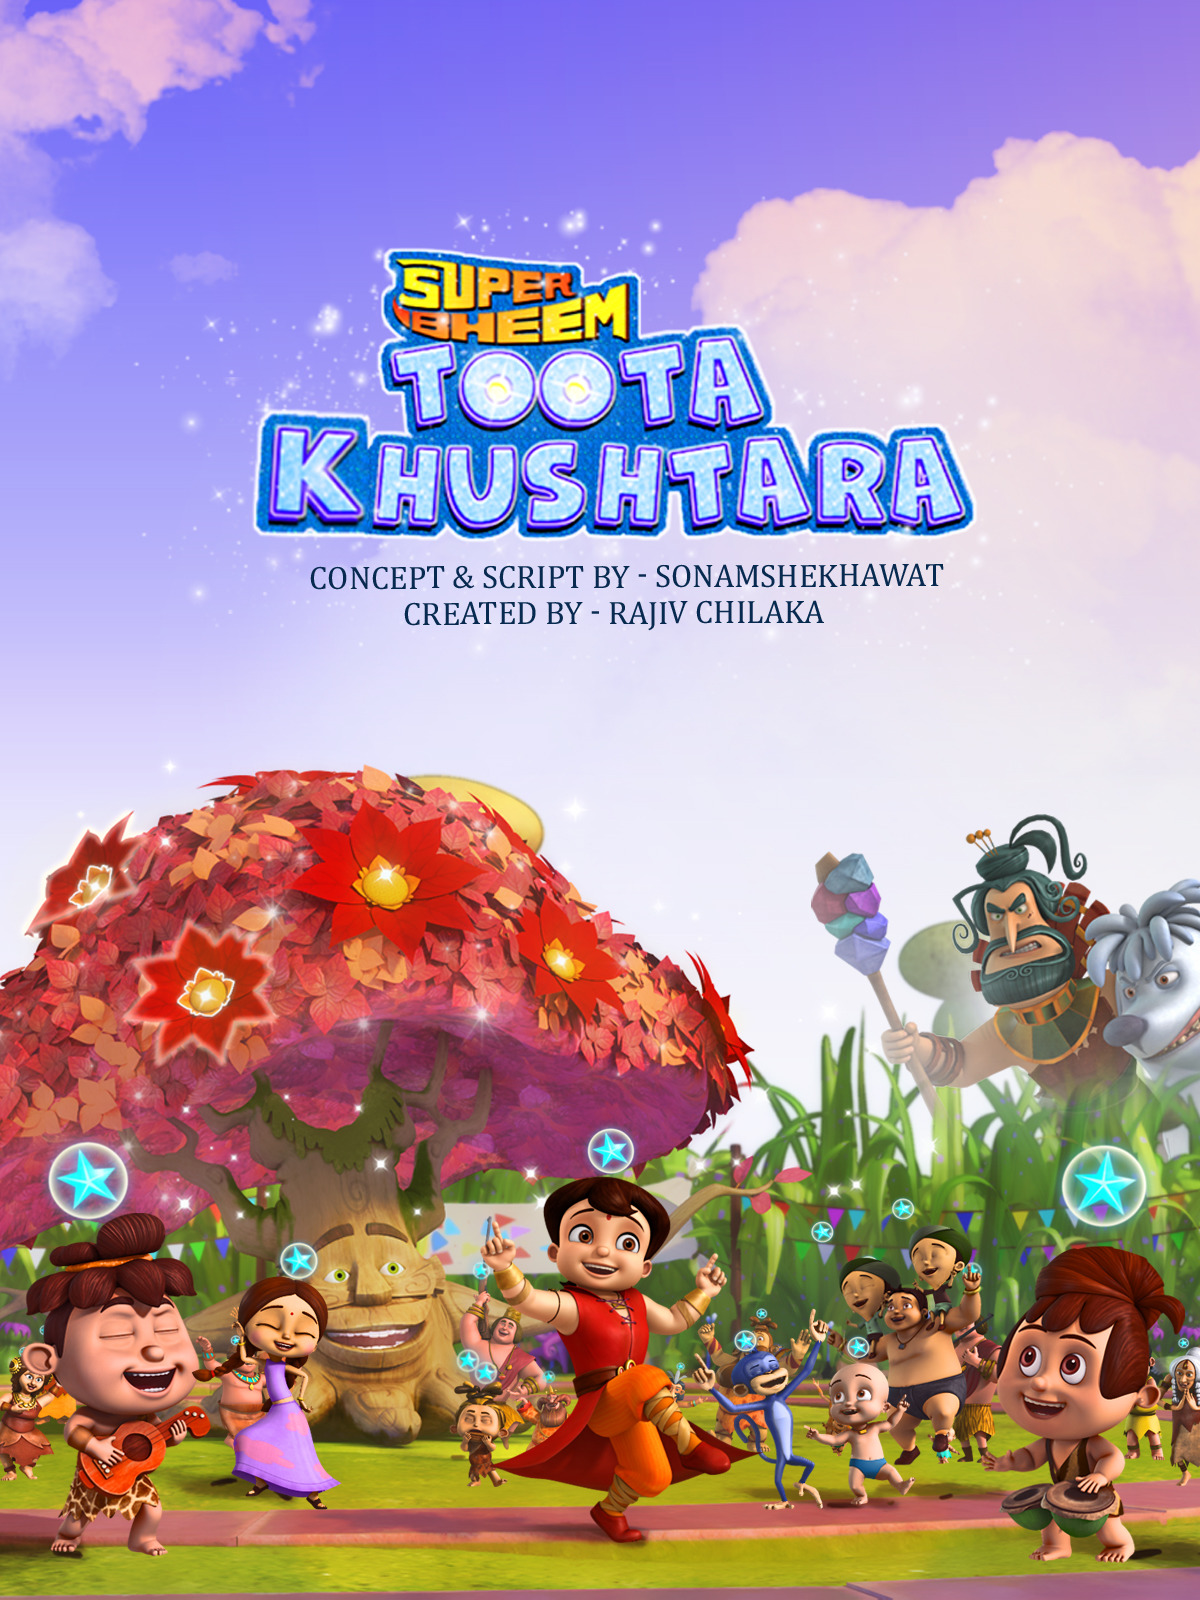 Super Bheem Toota Khush Tara 2017 Full HD Movie